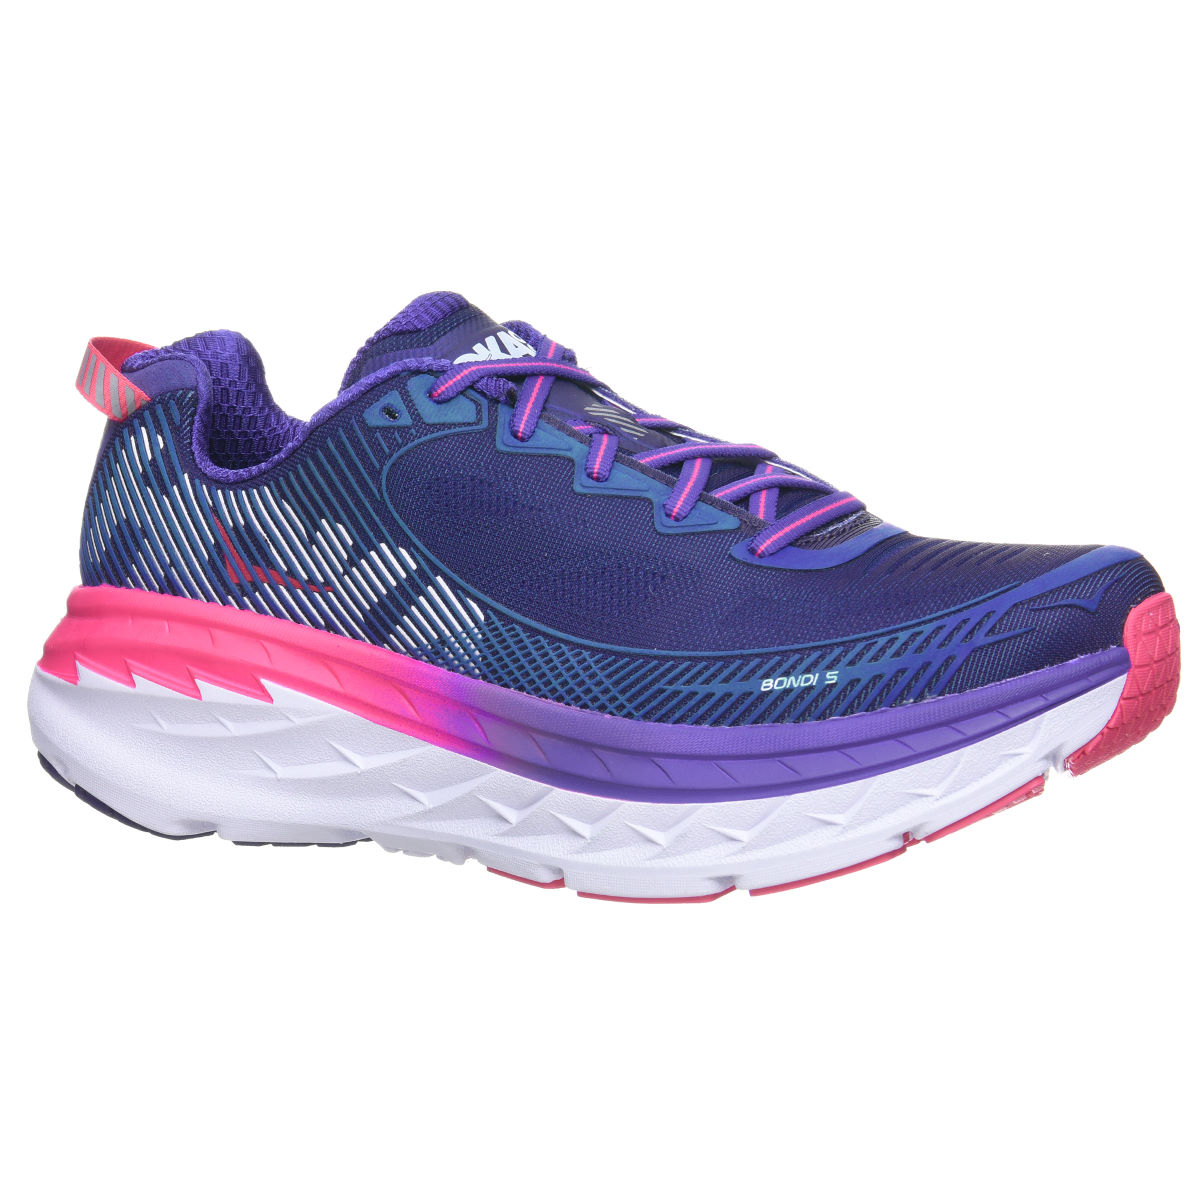 Chaussures Femme Hoka One One Bondi 5 - UK 4.5 Blue/Pink